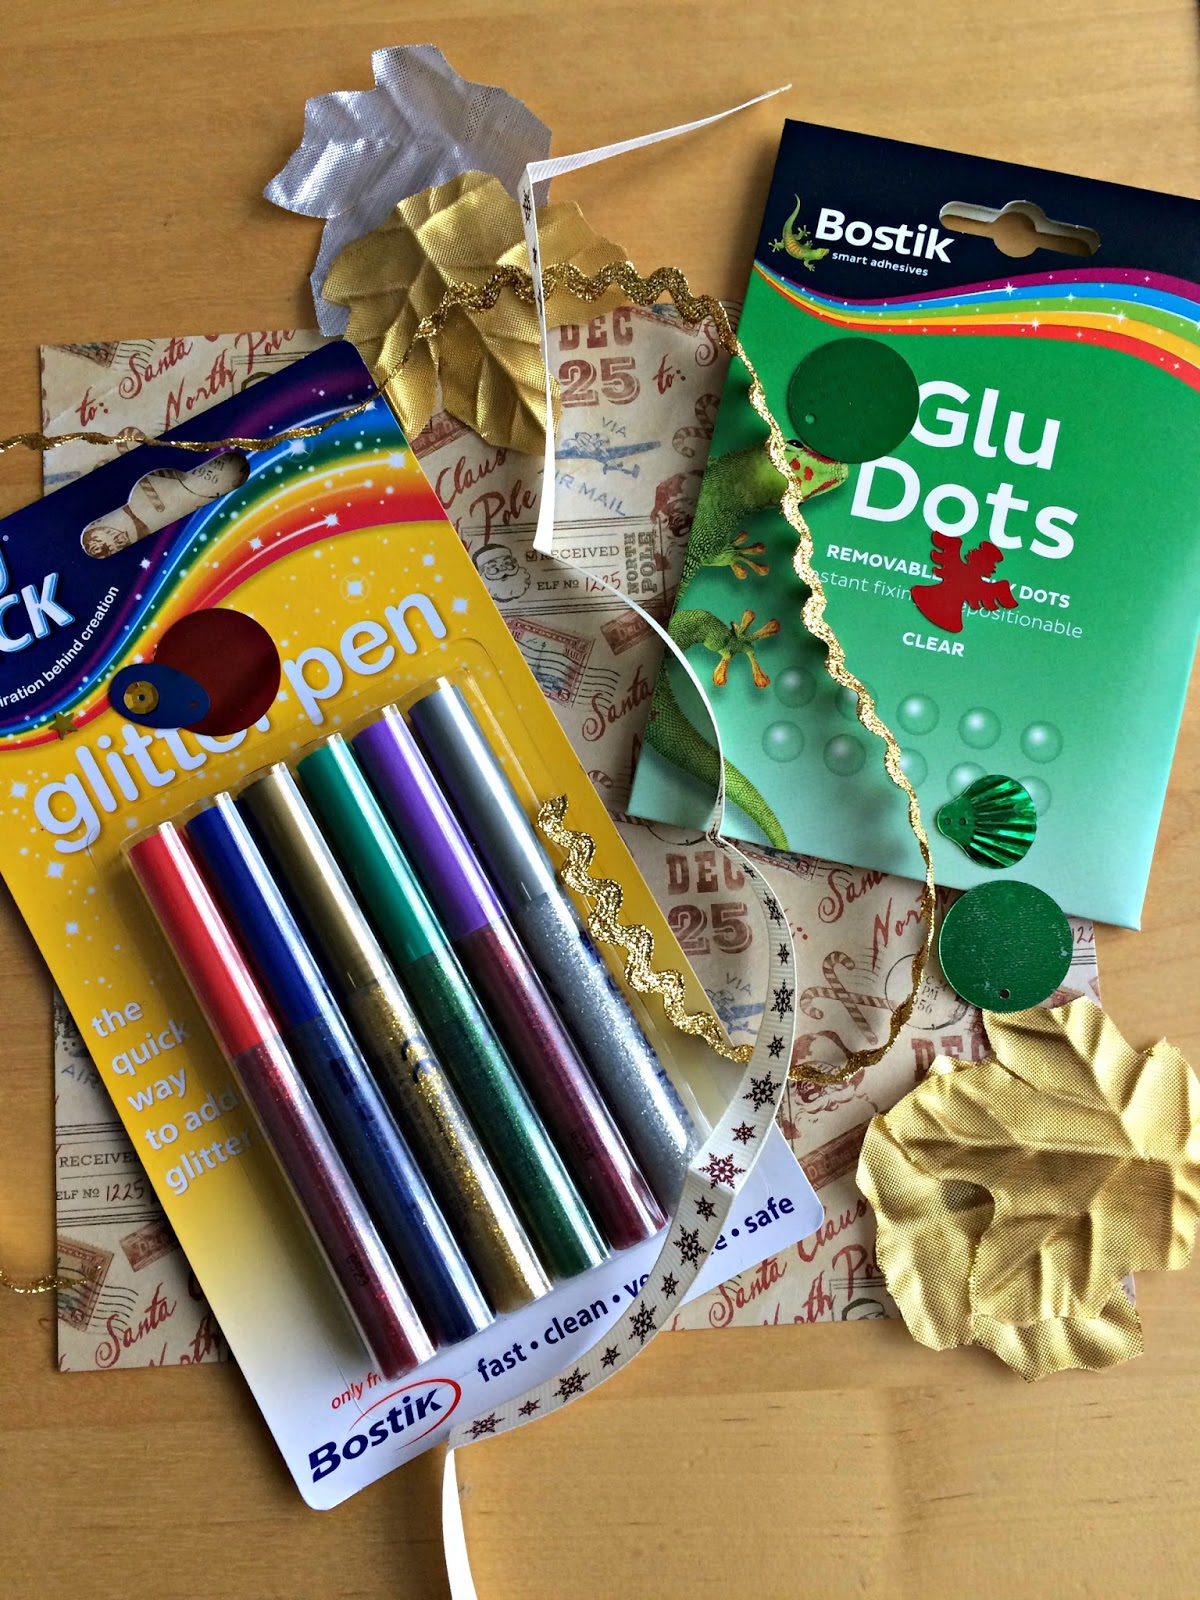 Bostik Glue Dots & Glittery Pens